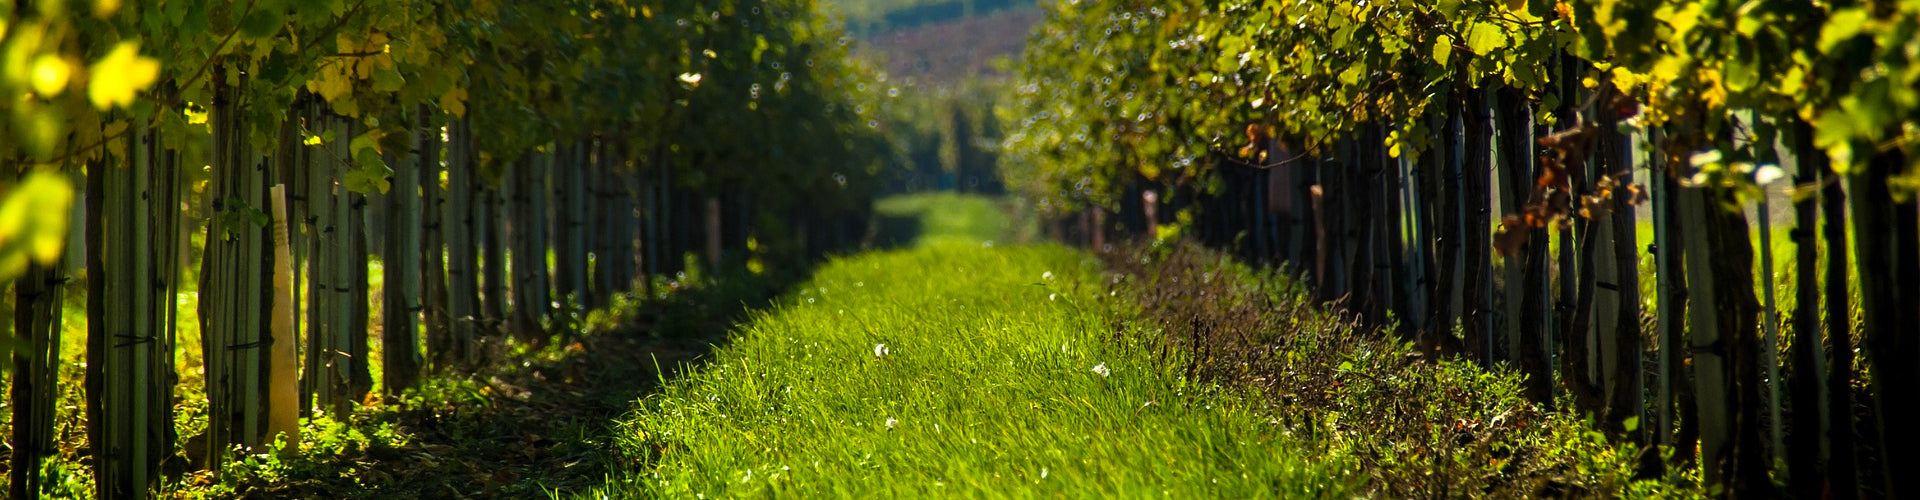 Healthy Organic Vineyard with cover crops